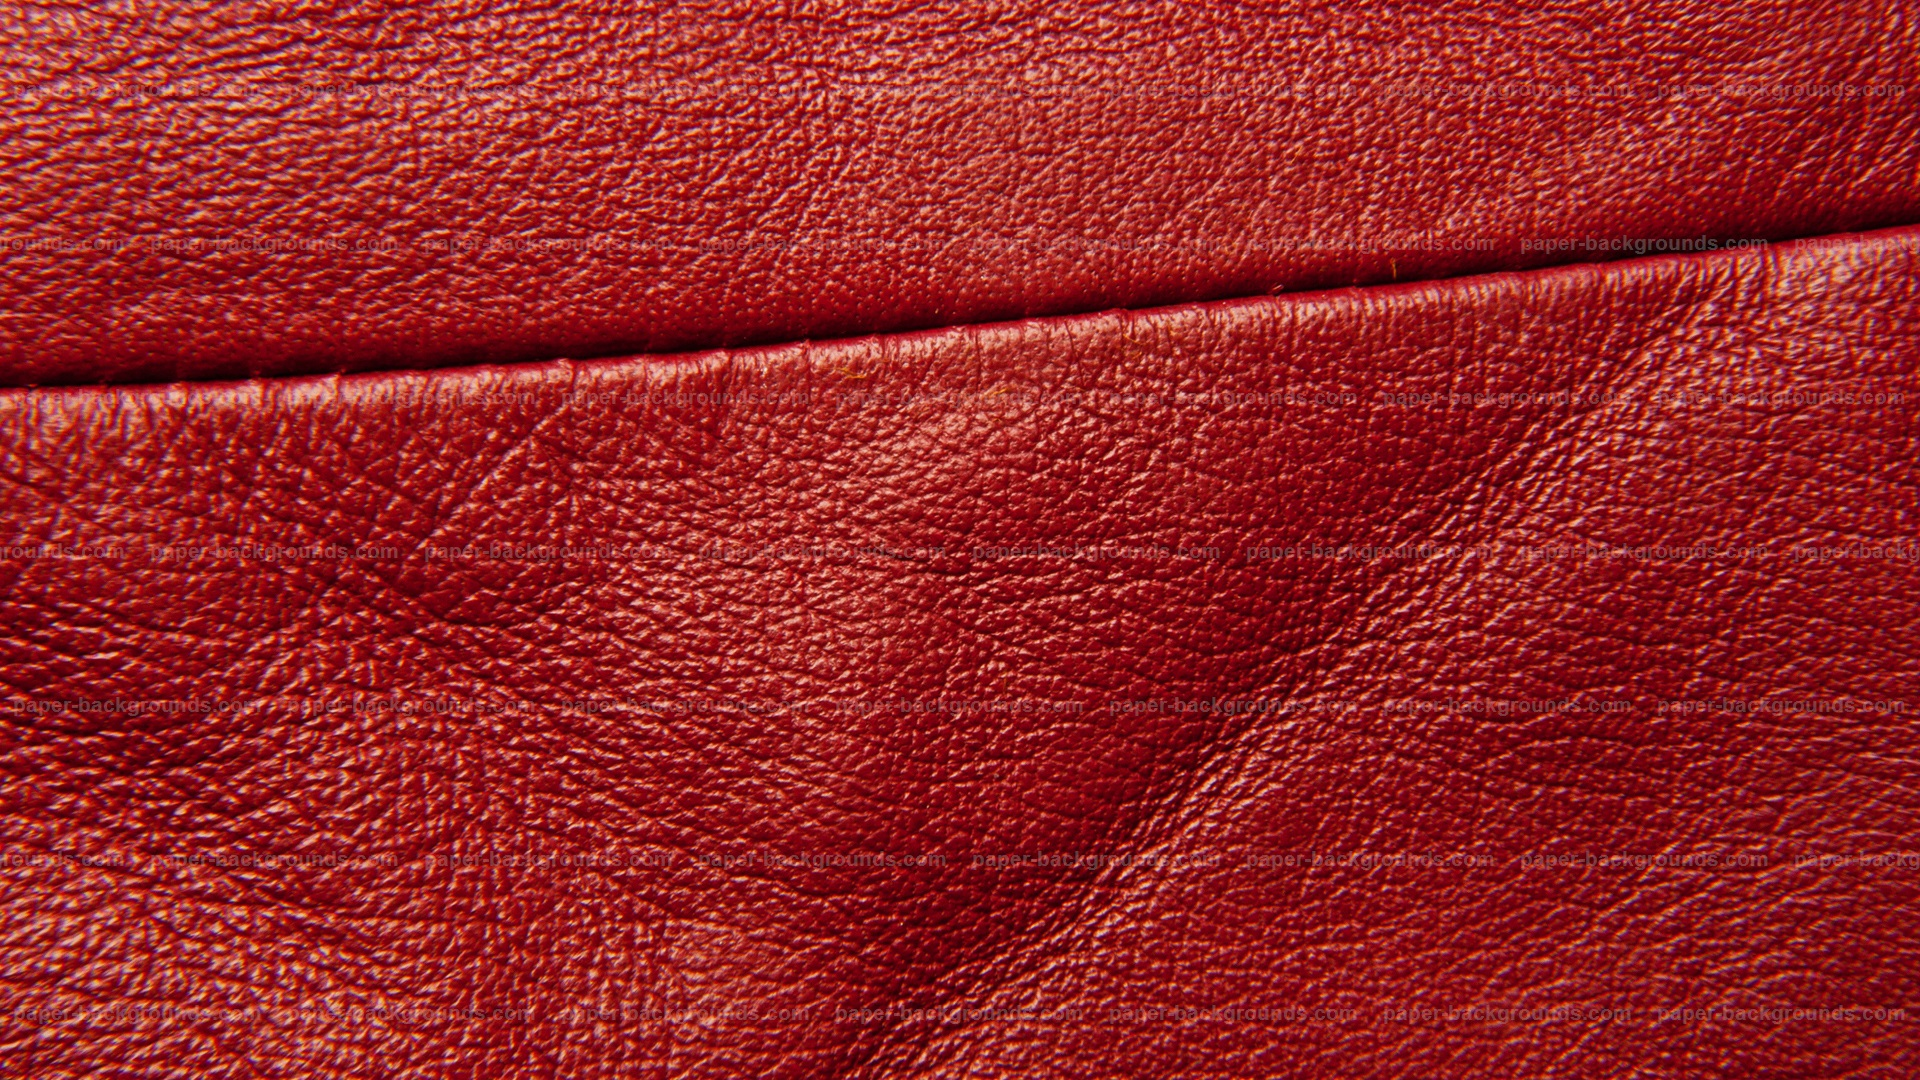 Red Leather Texture With Stitch HD